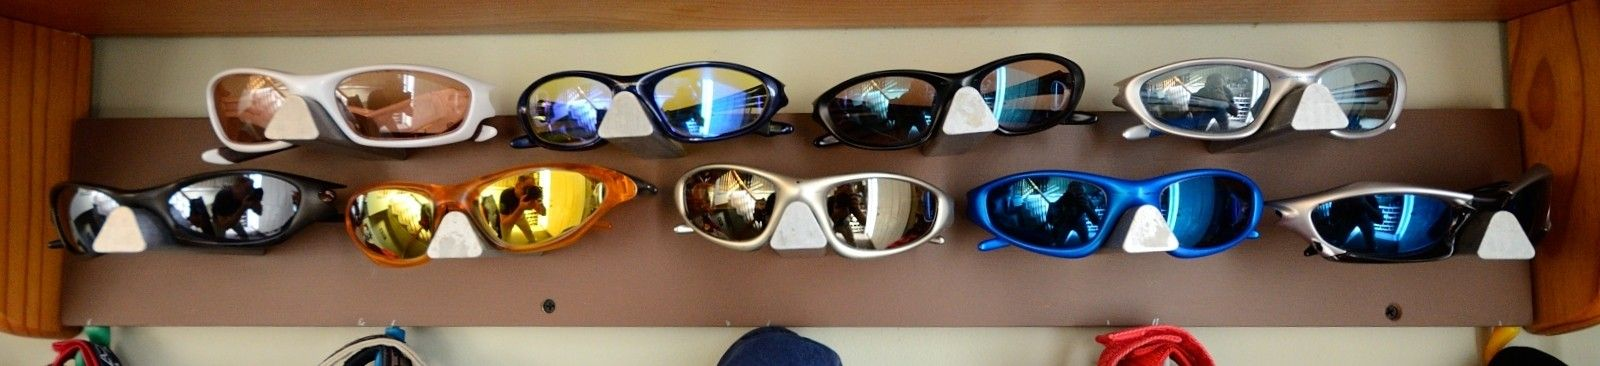 Part of my Old School Oakley collection - PJB_9750_48247.JPG